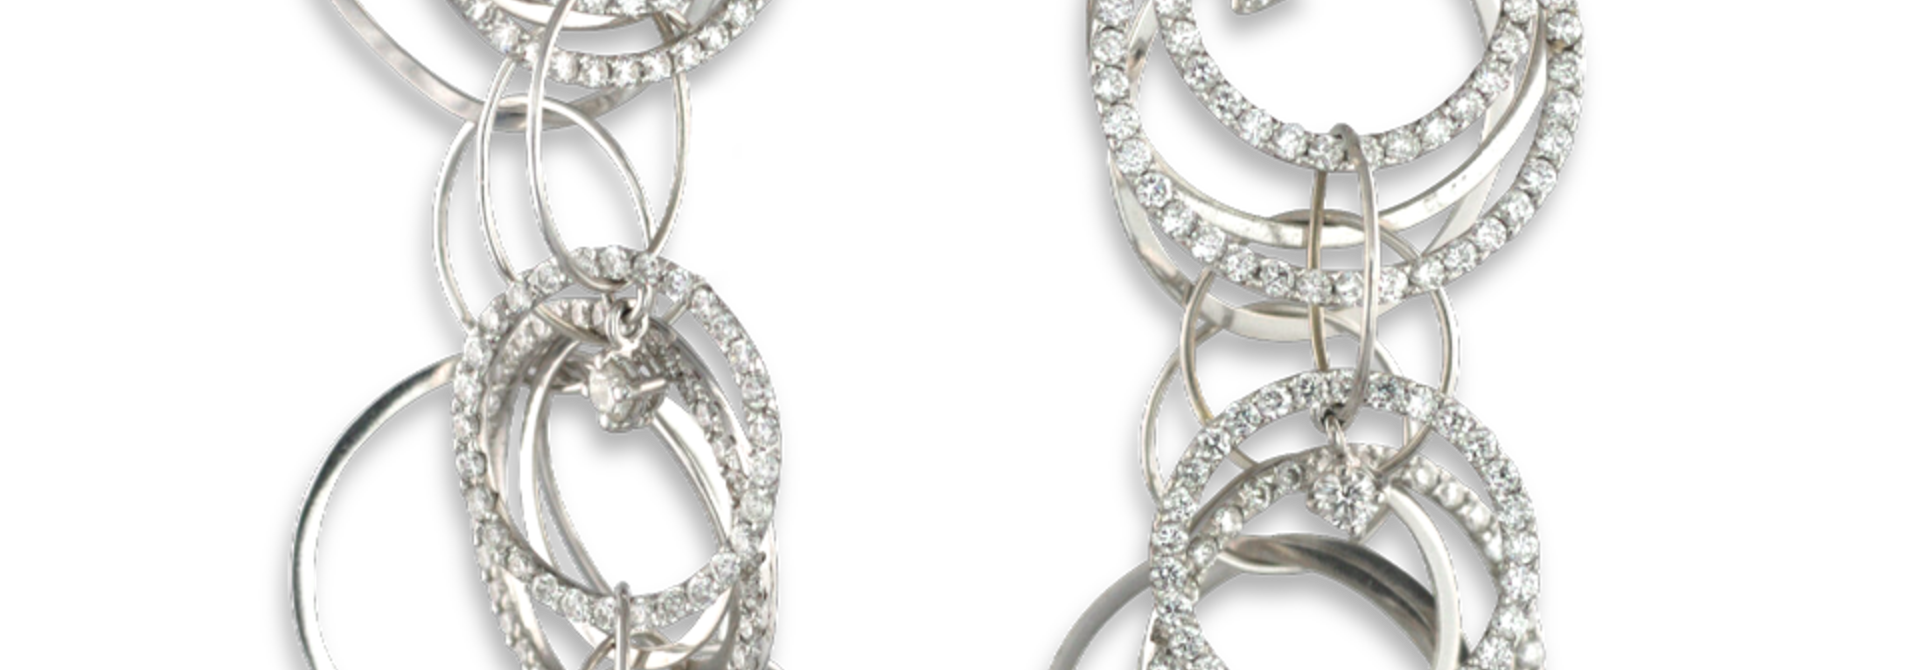 18k White Gold and Diamond Multi-Hoop Link Earrings